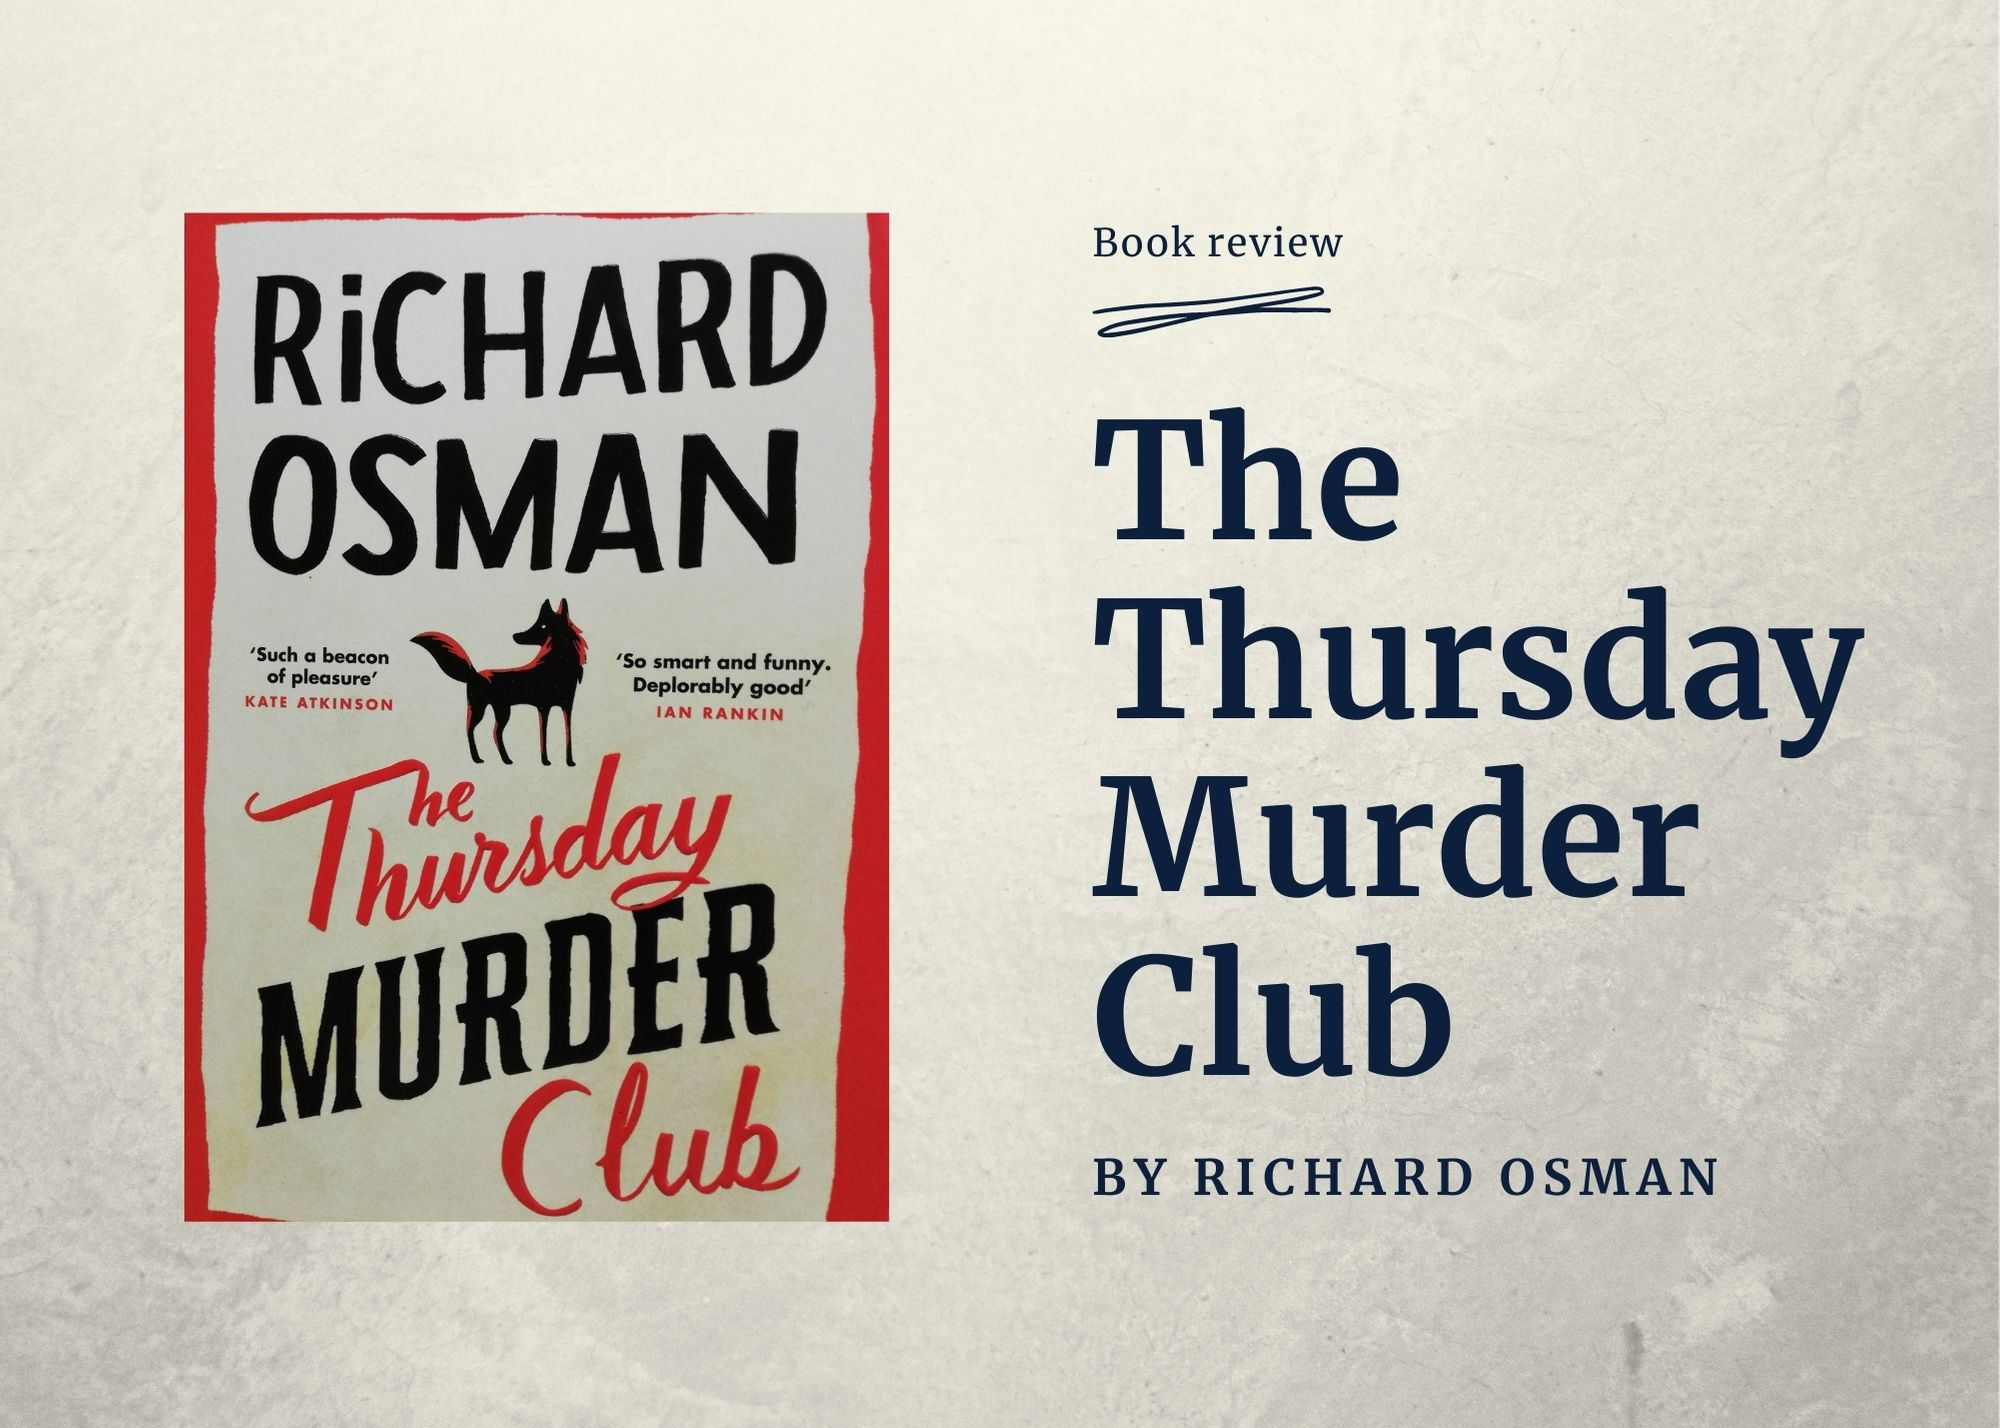 The Thursday Murder Club, by Richard Osman